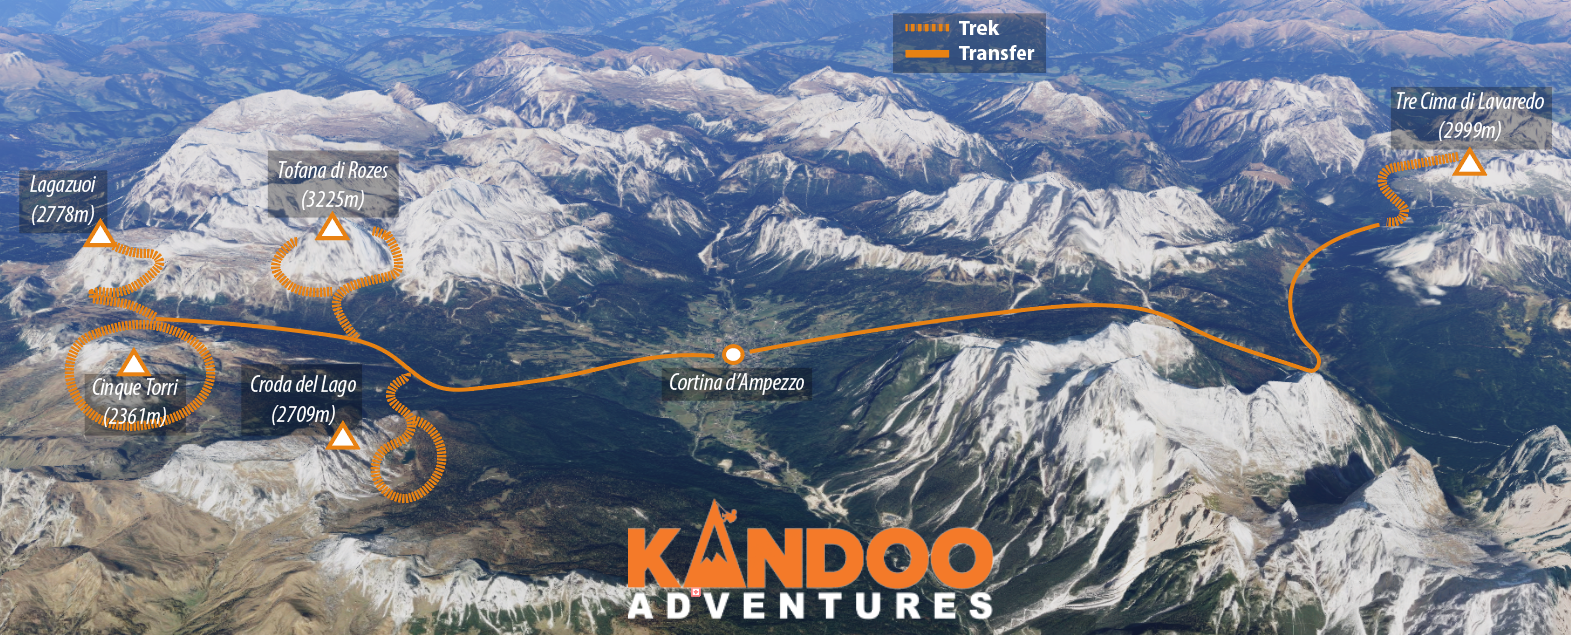 Highlights of the Dolomites route map